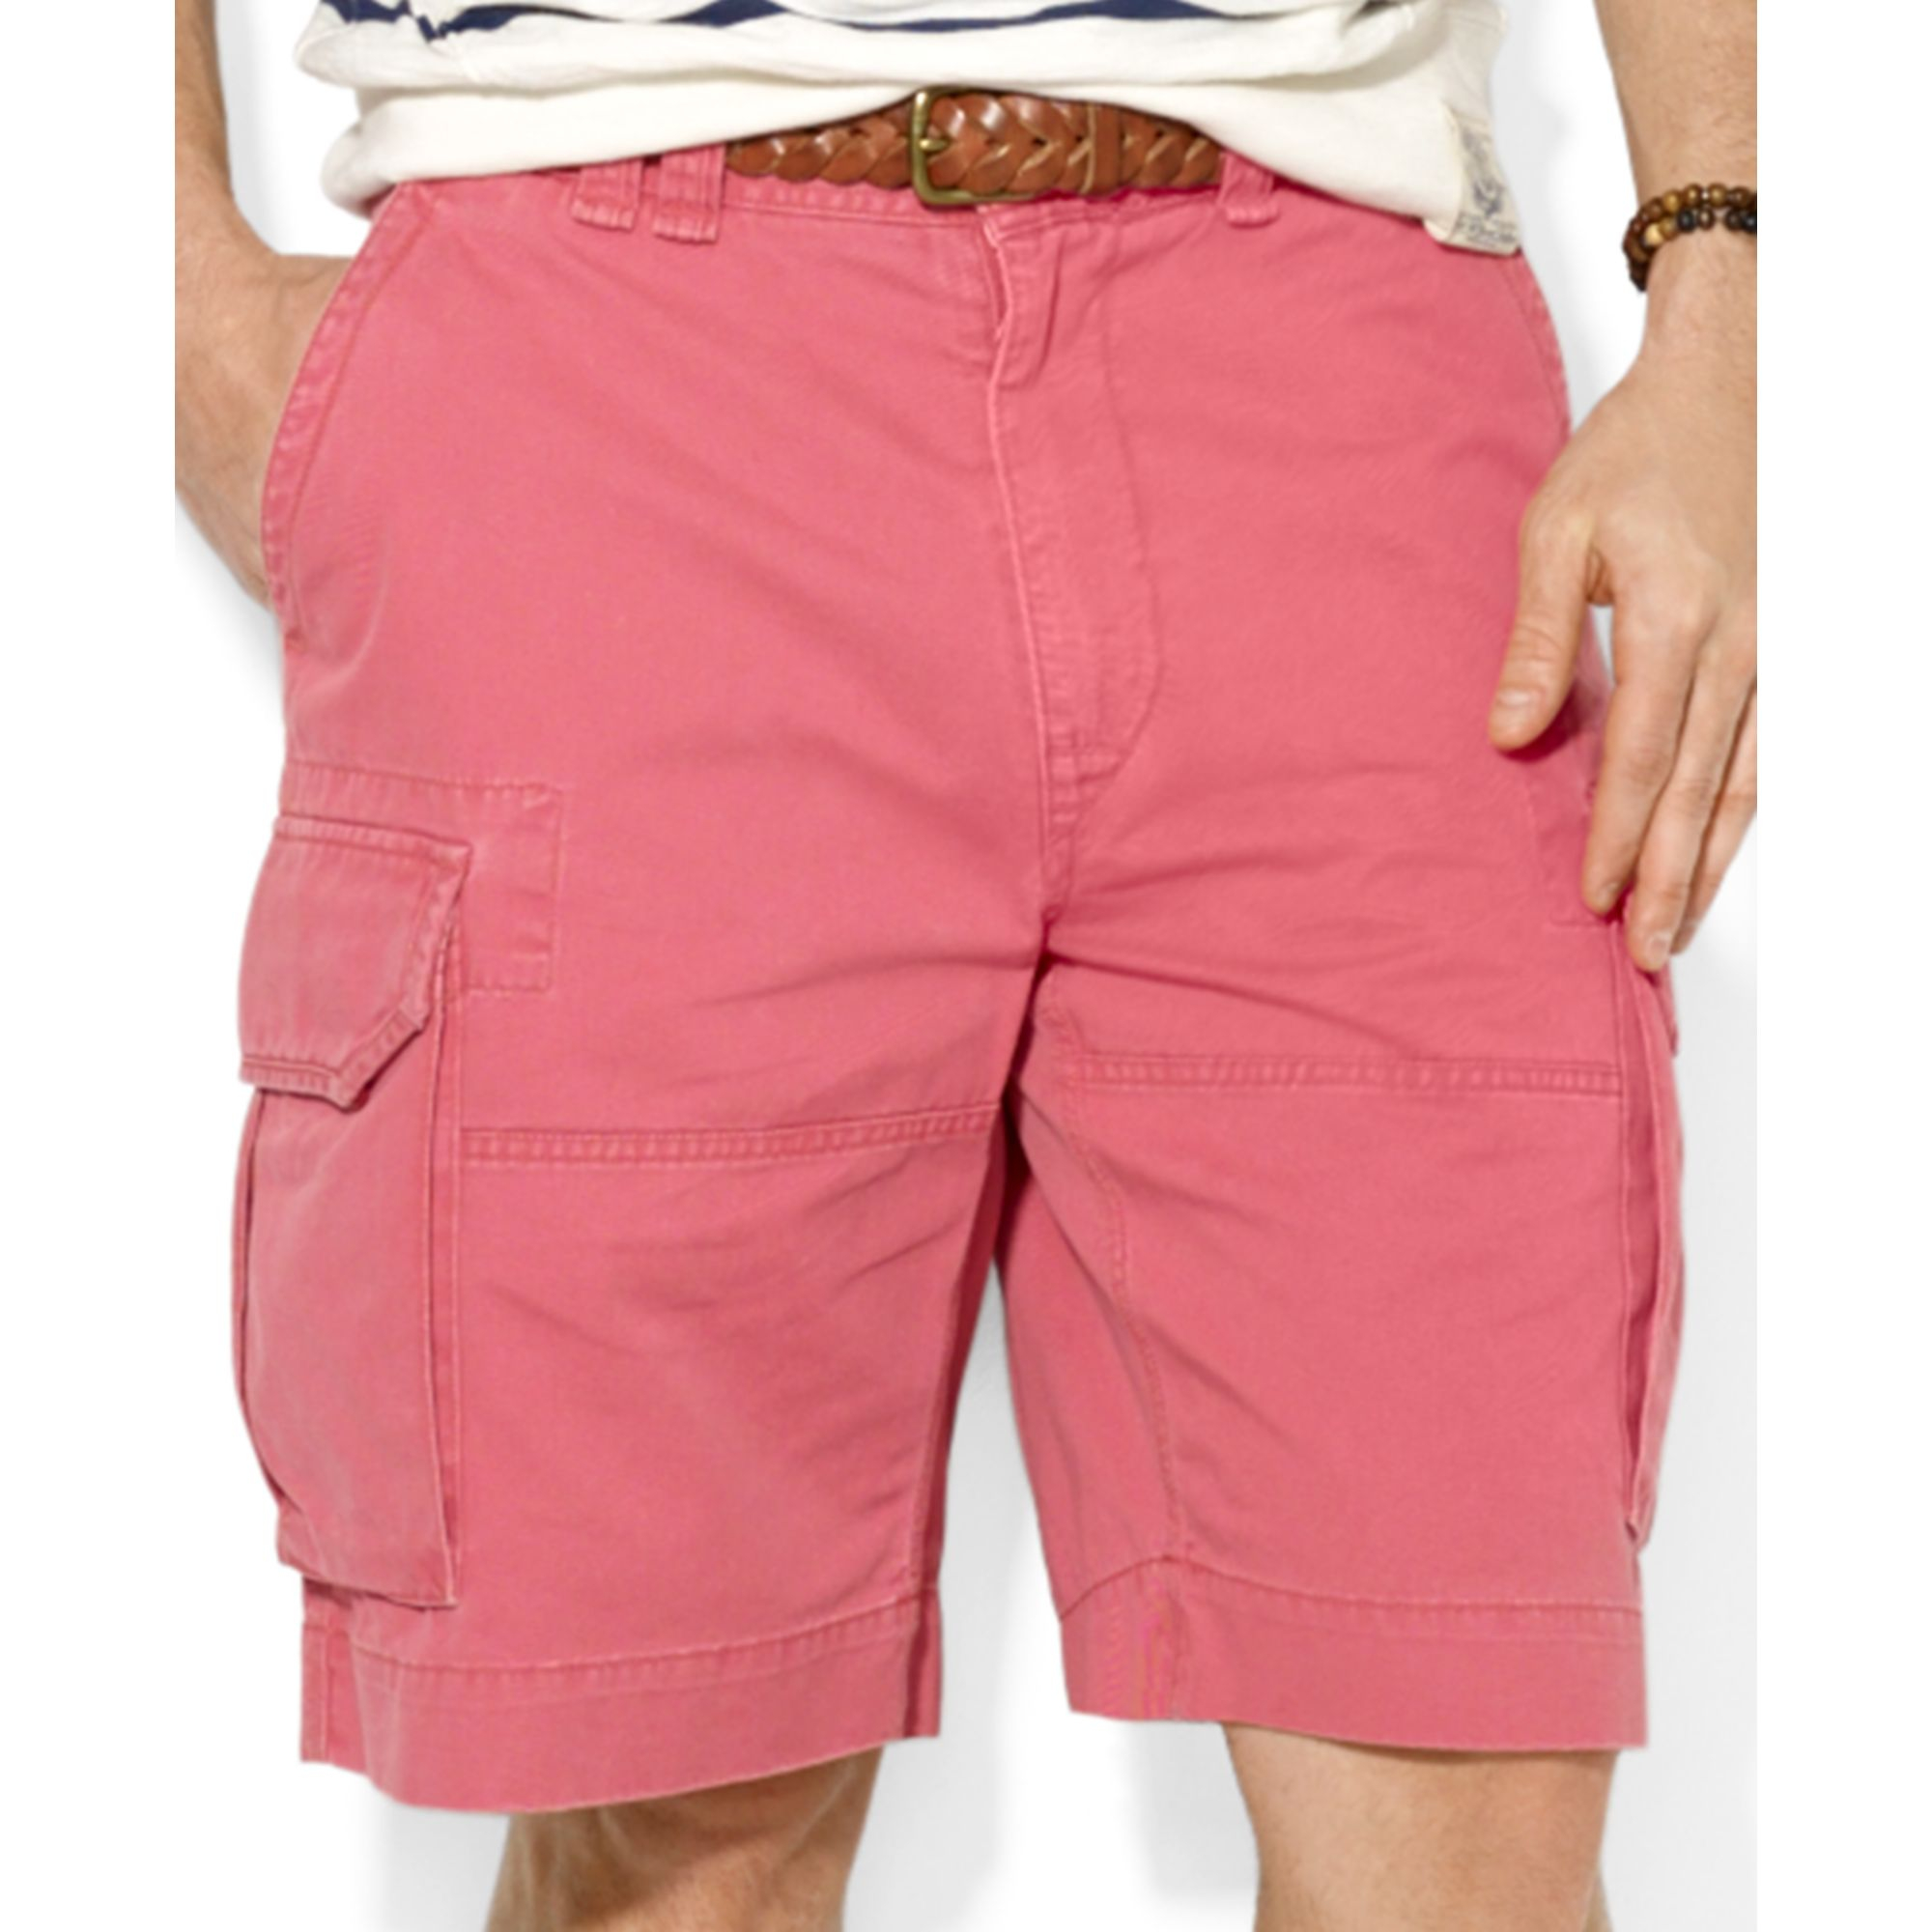 0840425ad033 ... release date lyst ralph lauren polo classic cargo shorts in red for men  3118b 75e4e